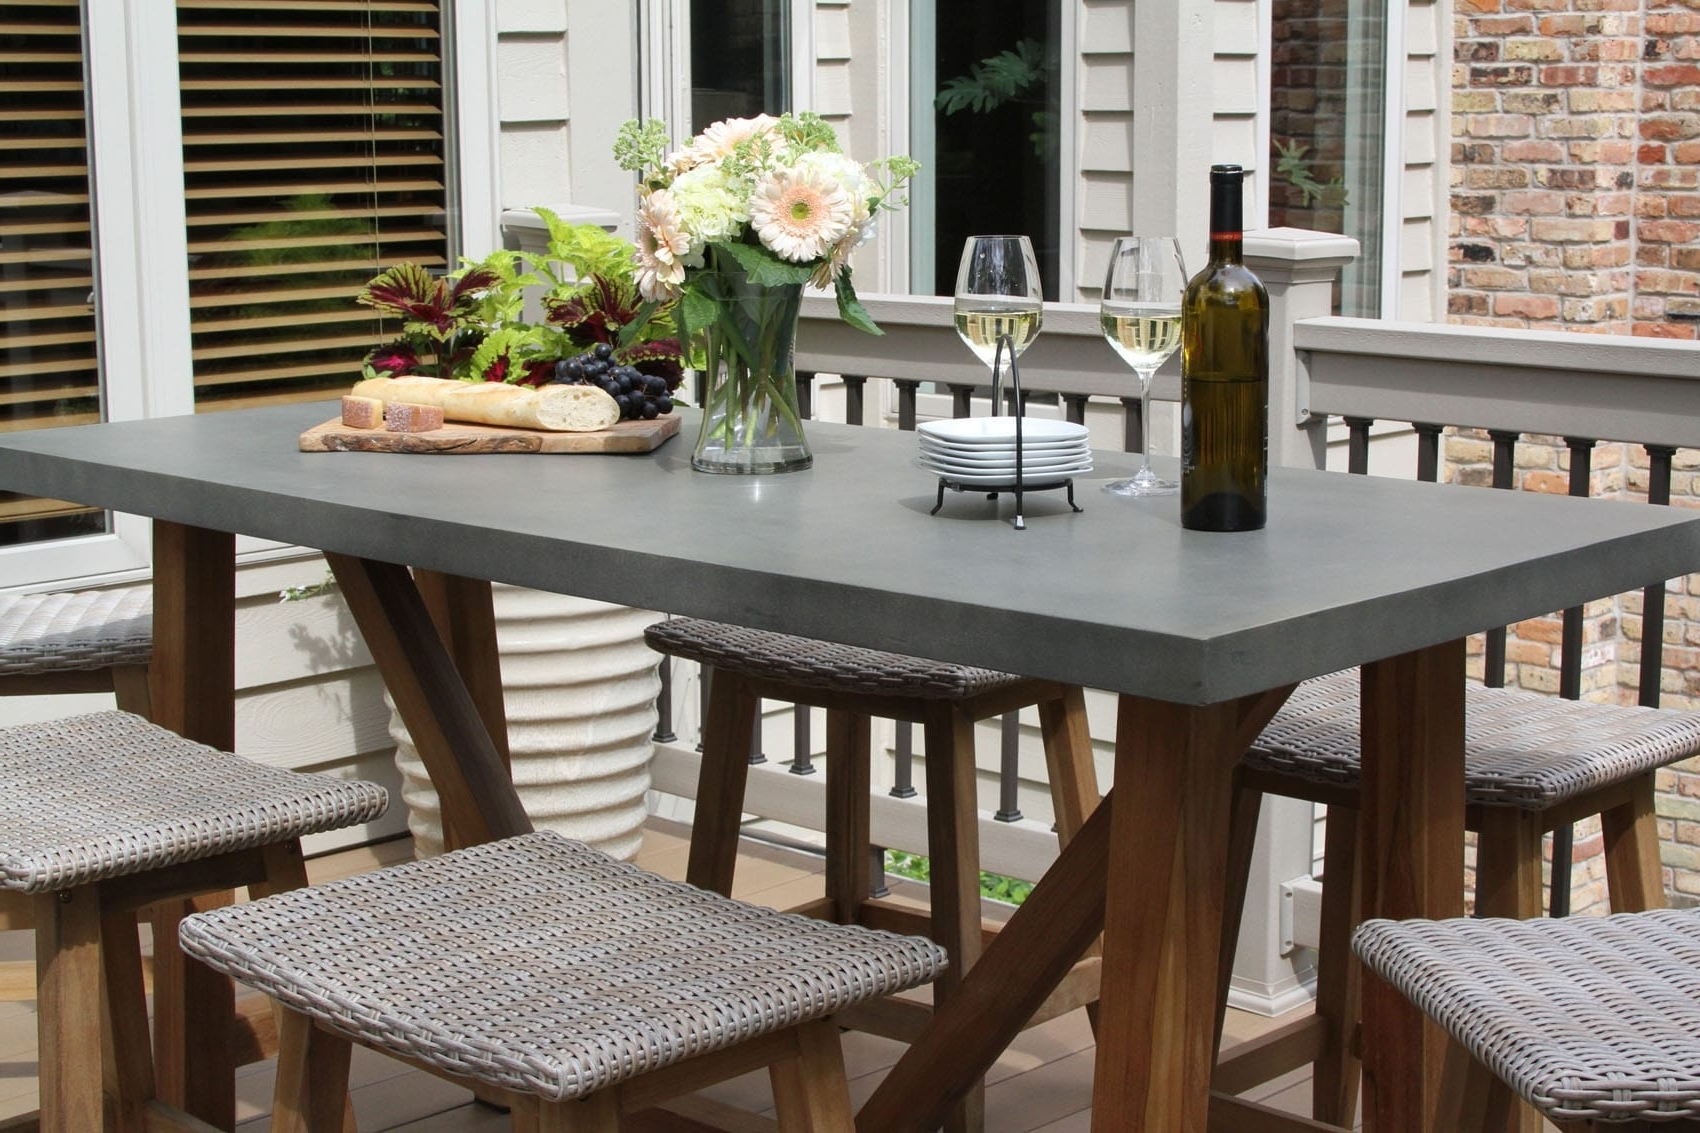 Outdoor Brasilia Teak High Dining Tables Pertaining To Current Teak & Wicker Furniture Collection From Outdoor Interiors (View 10 of 25)